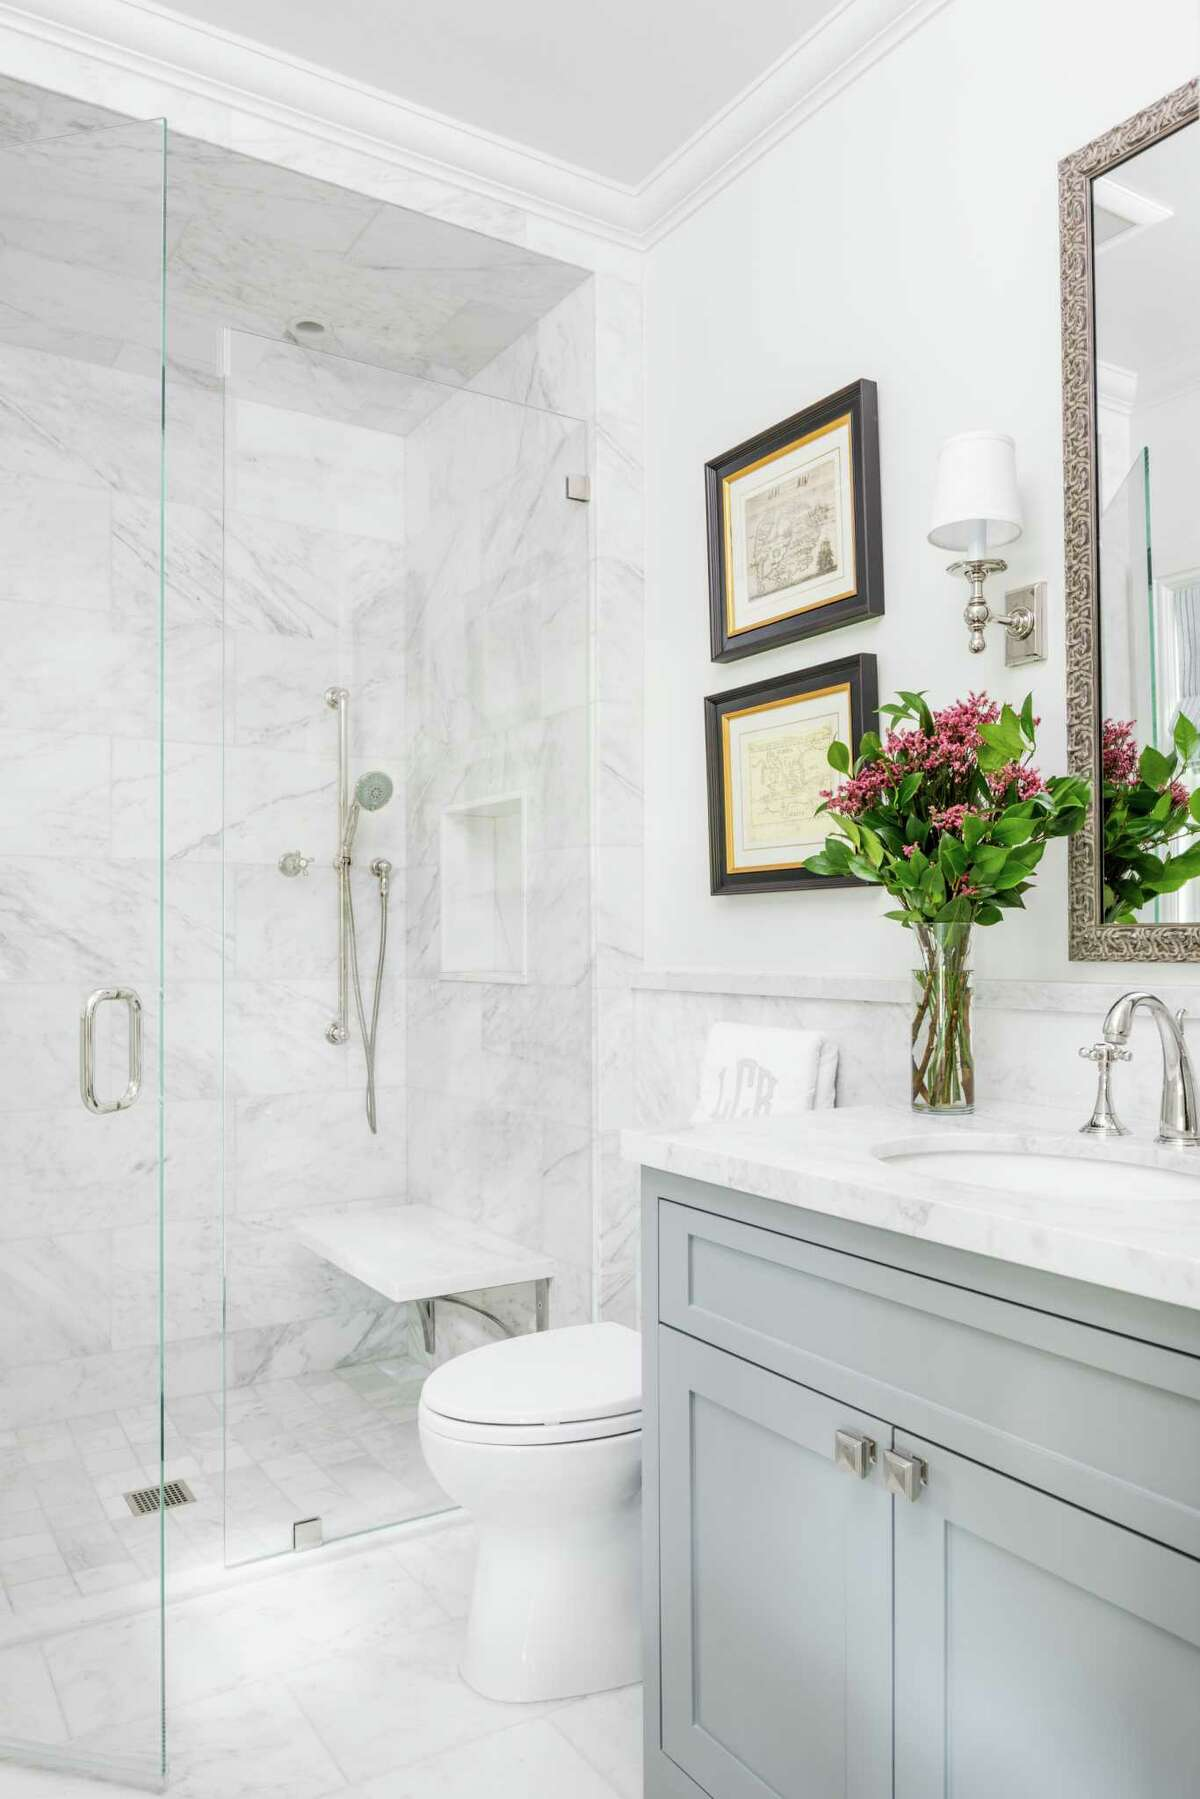 """As baby boomers remodel to age in place, they opt for """"no curb"""" or """"low curb"""" shower entries for easier access if they ever need to use a walker or wheelchair."""